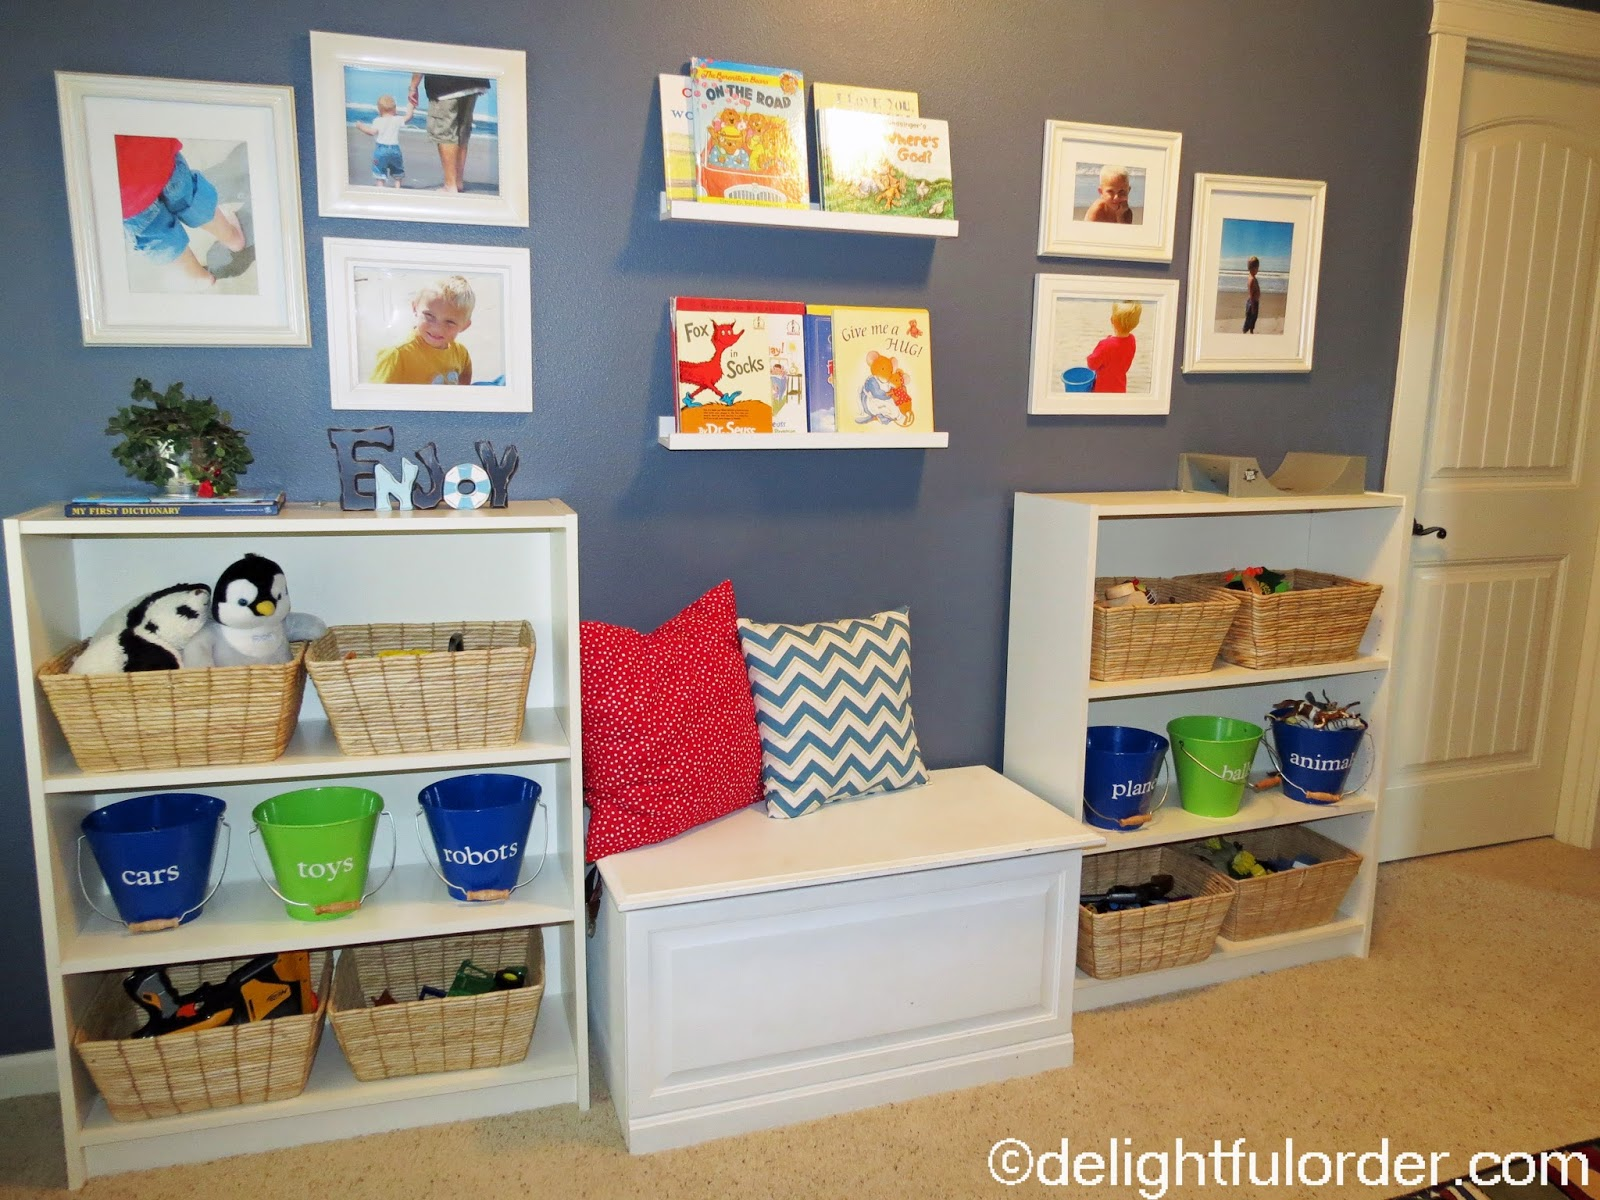 Playroom Furniture Ikea Billy Delightful Order Toy Room Tour